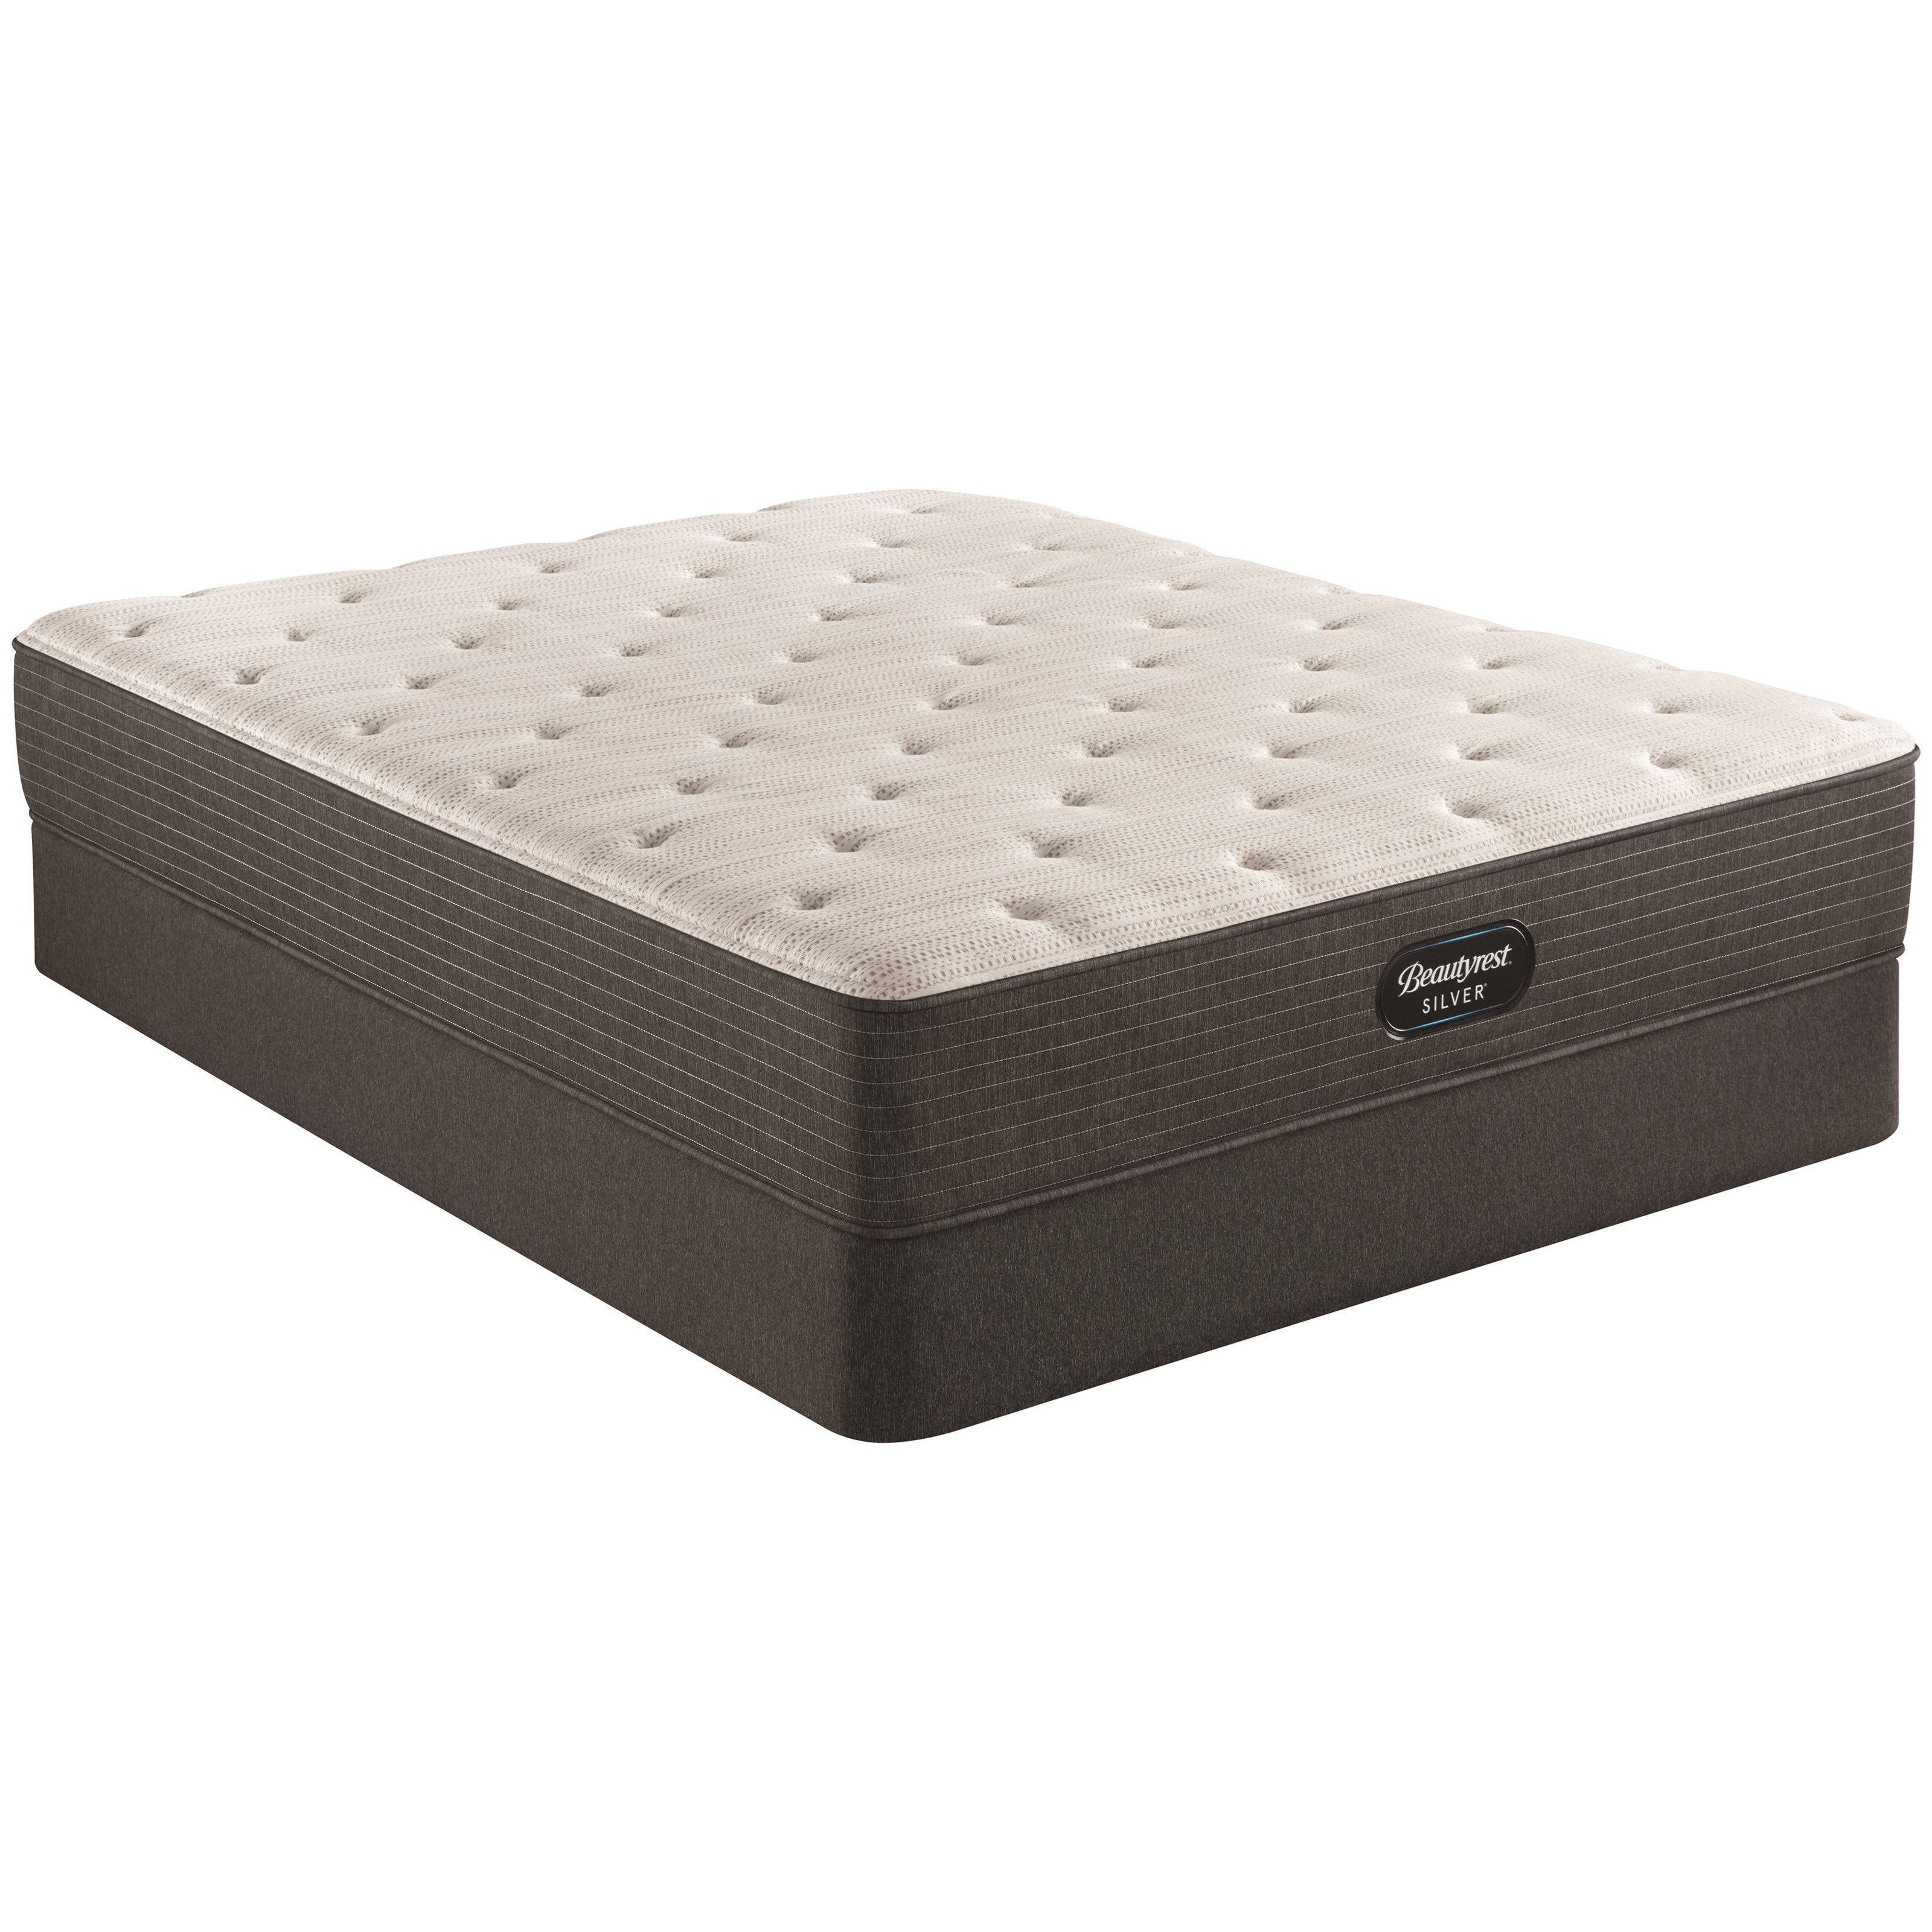 "BRS900 Plush Twin 12"" Pocketed Coil Mattress Set by Beautyrest at Darvin Furniture"